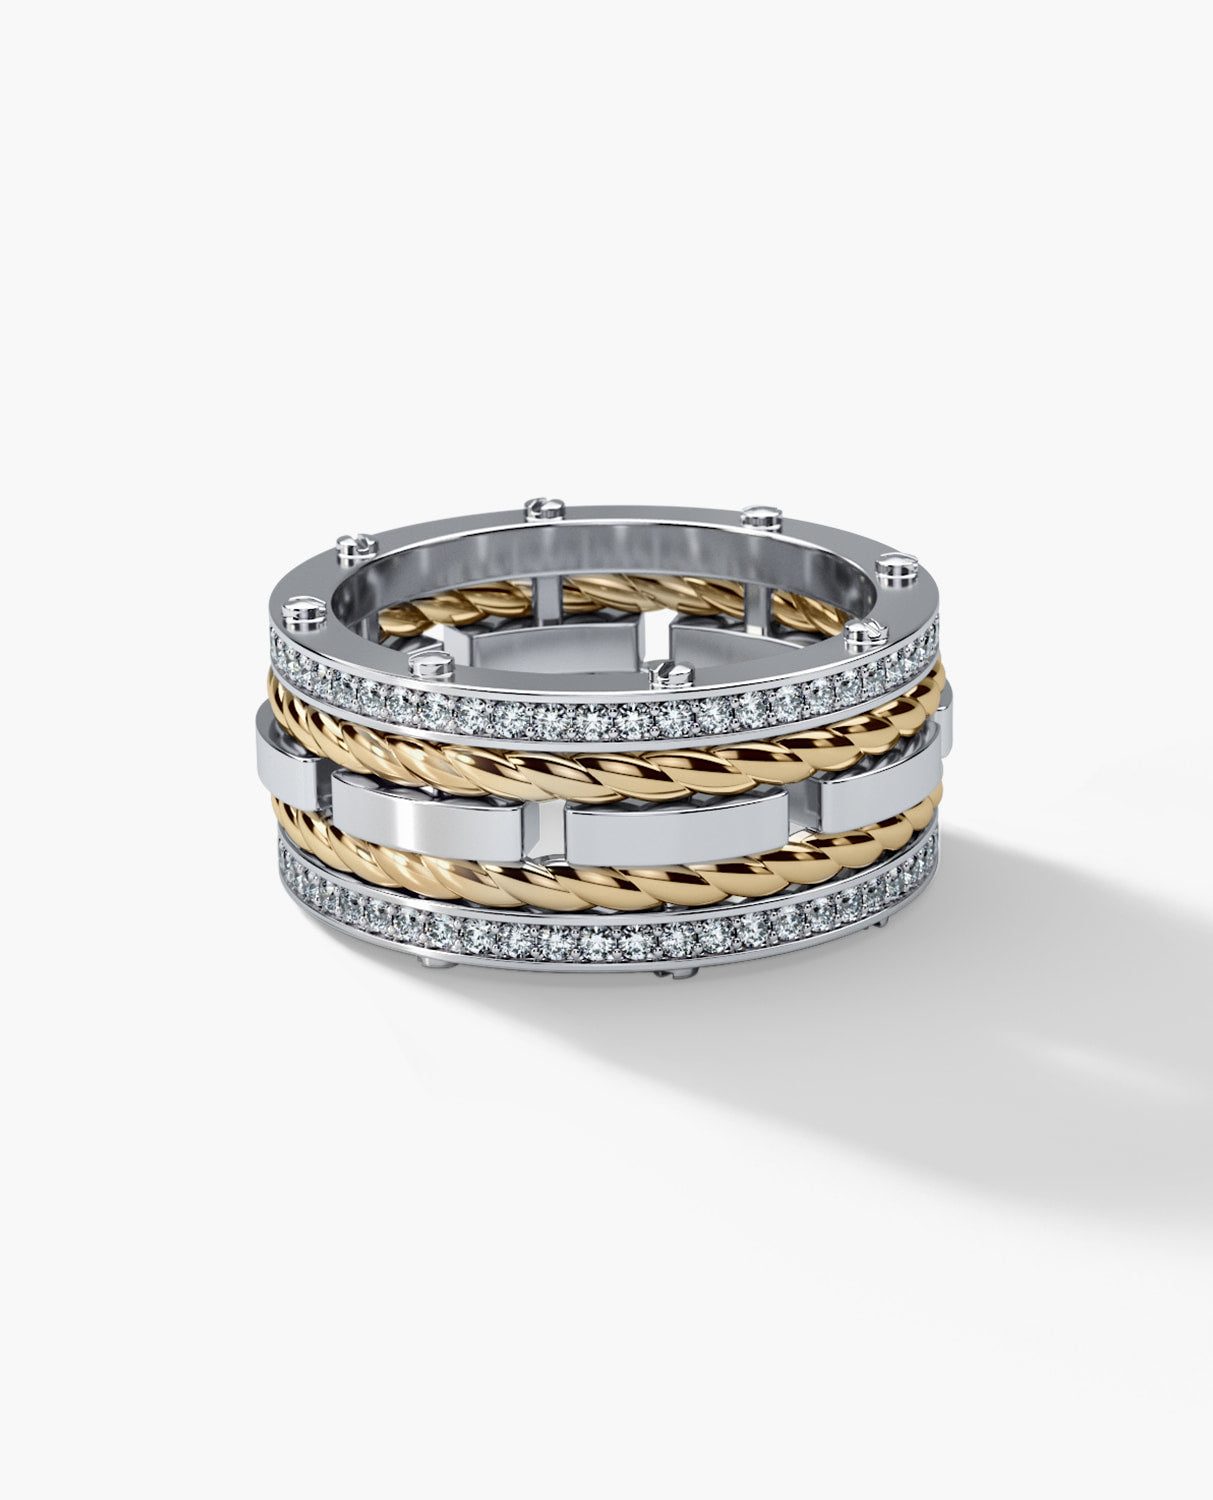 ROPES Mens Two-Tone Gold Wedding Band with 1.05ct Diamonds